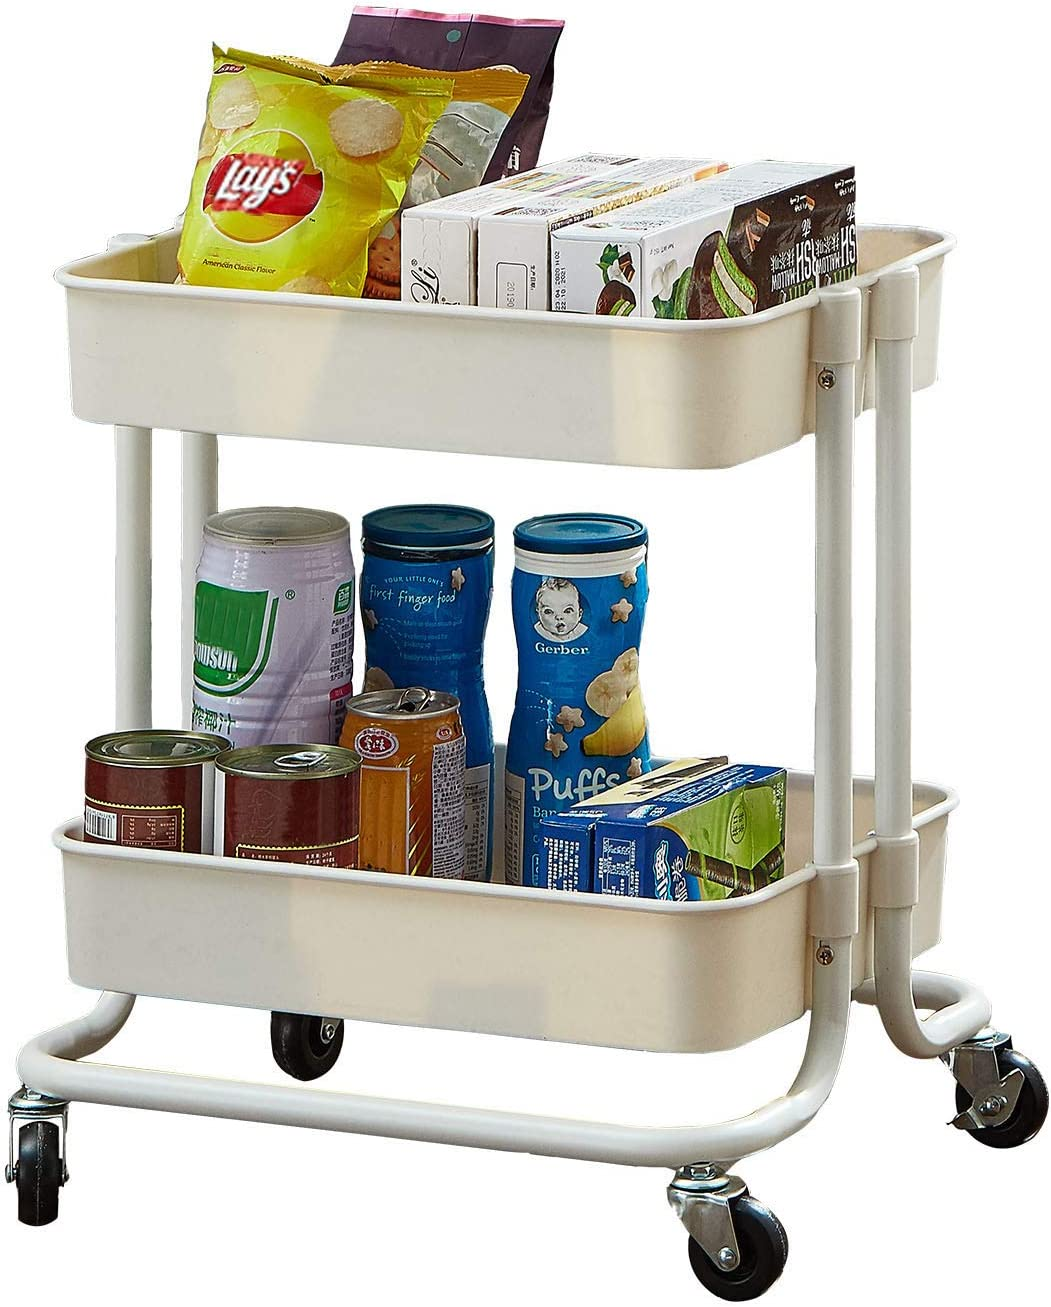 2-Tier Utility Rolling Cart Storage Sofa Side Table with Wheels, Mobile Trolley Organizer with for Office Home Kitchen Organization, Cream White